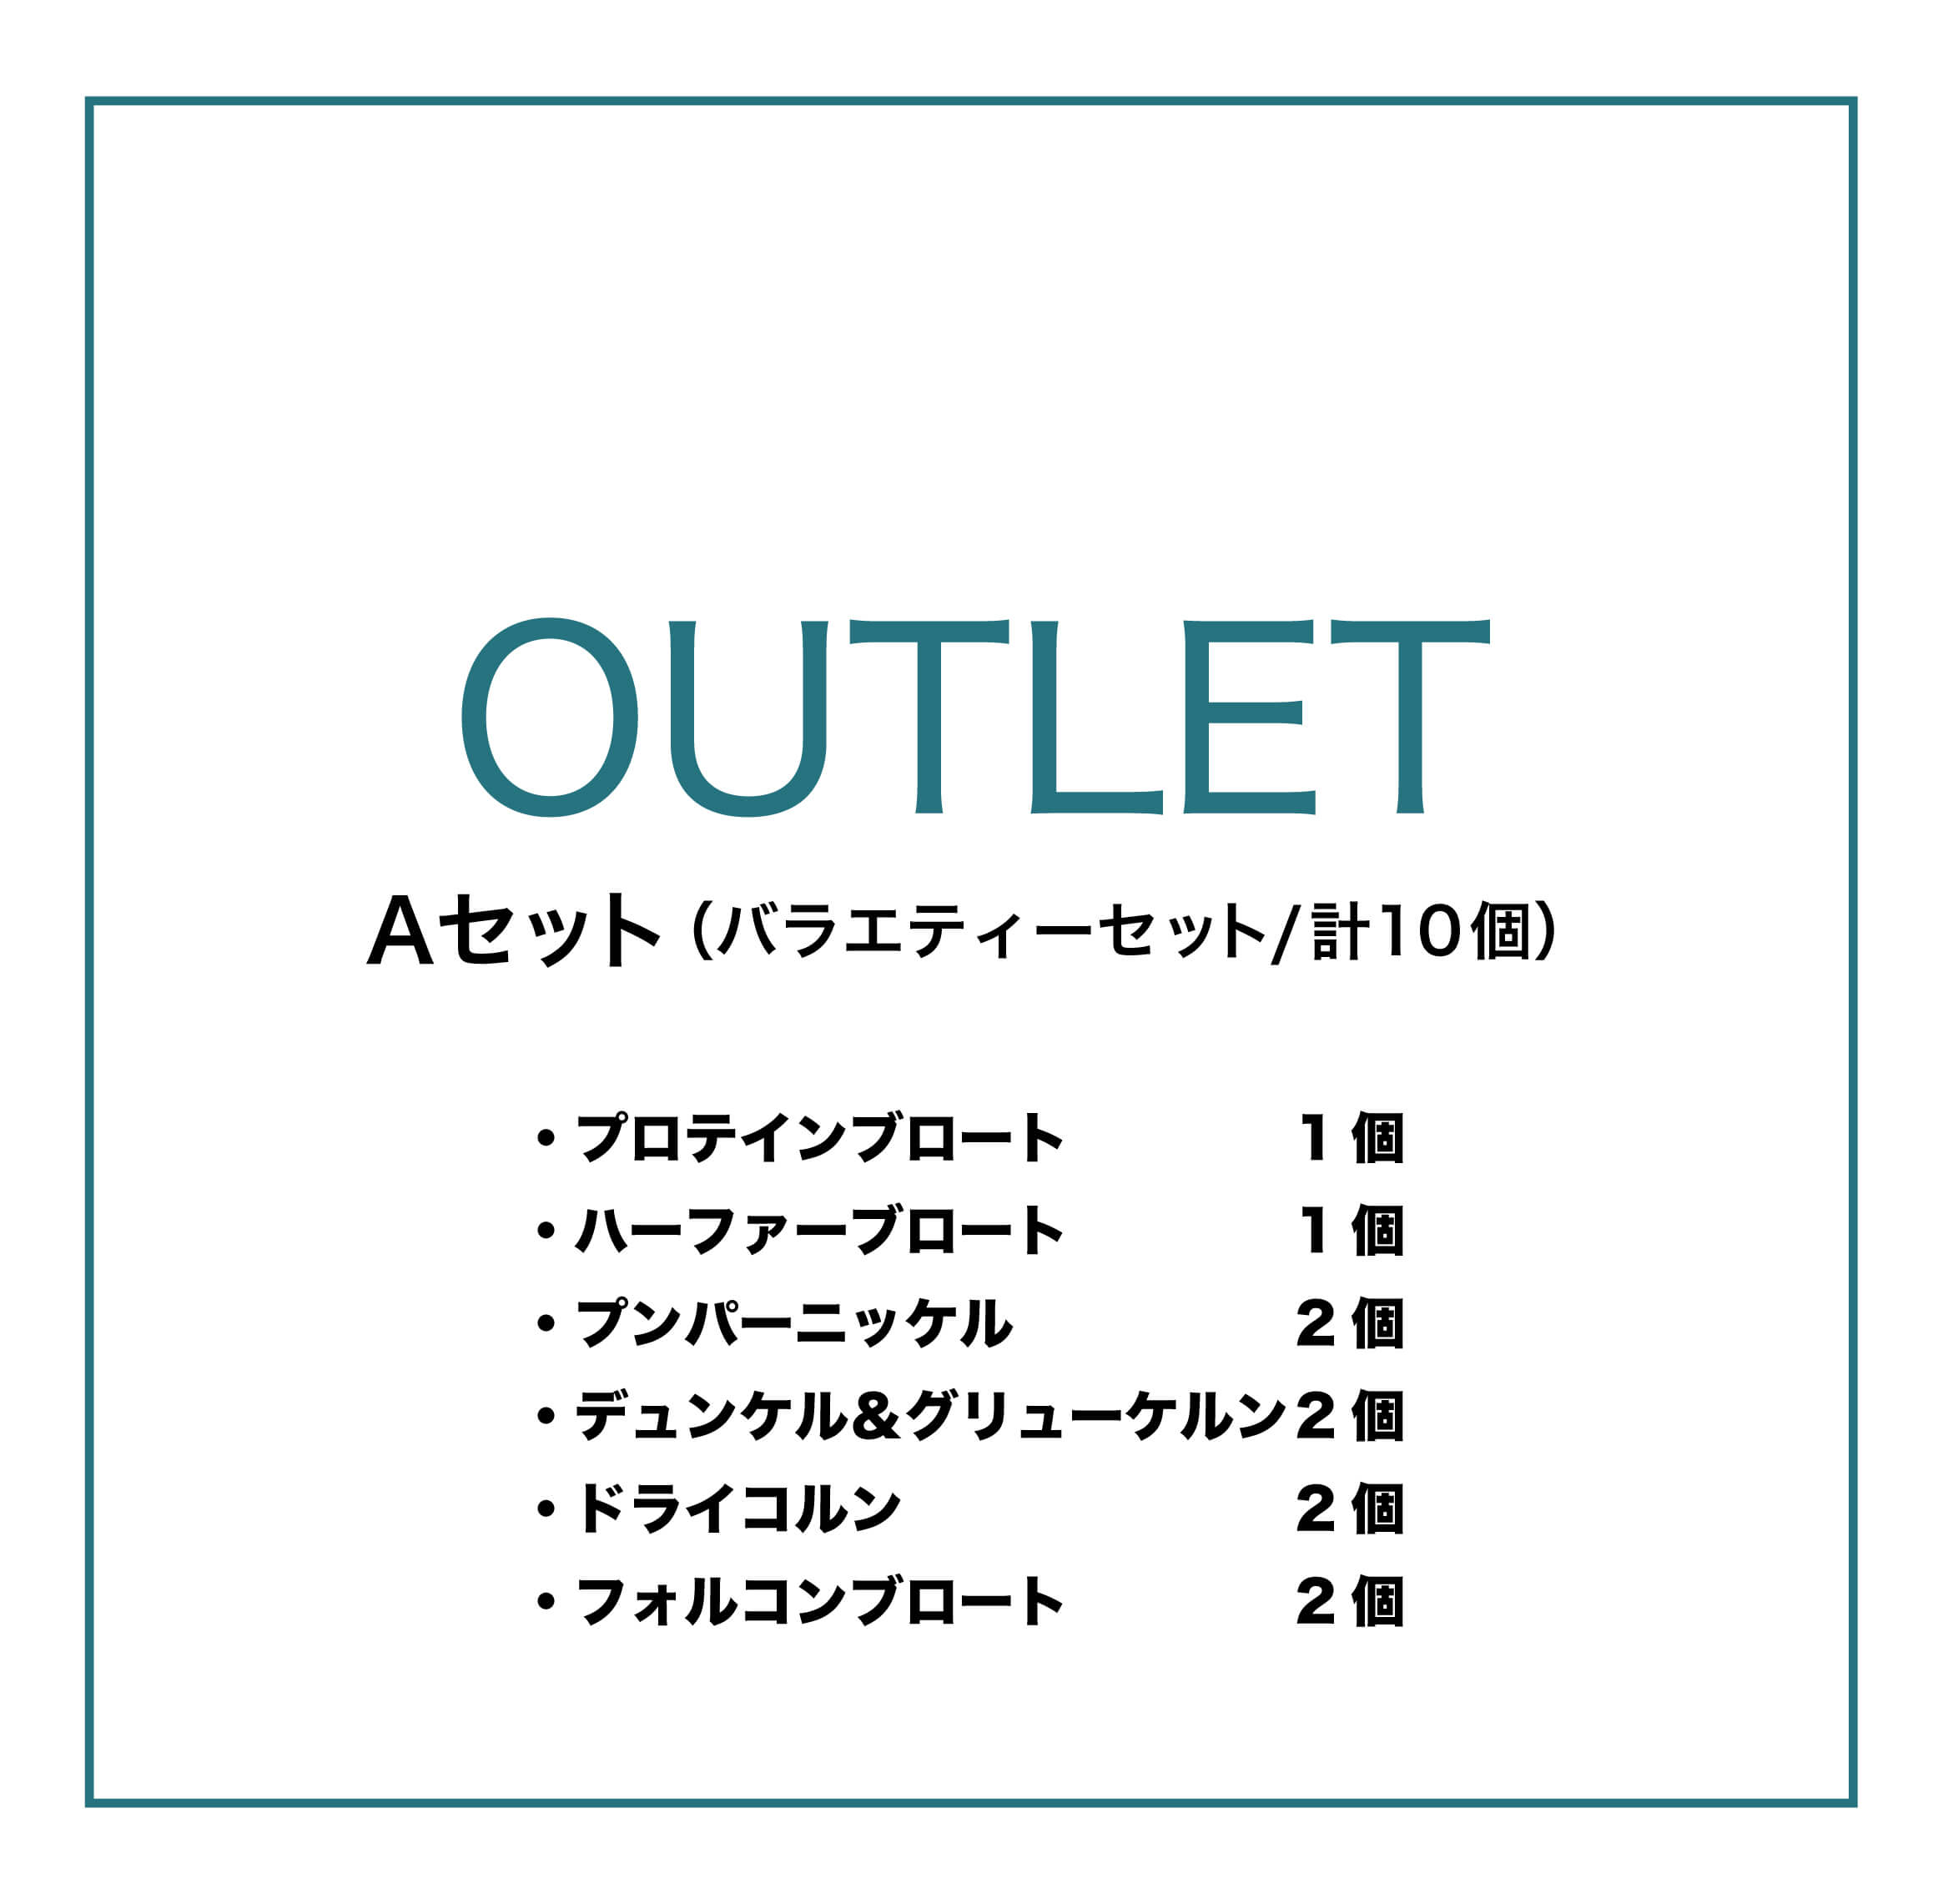 OUTLET_A